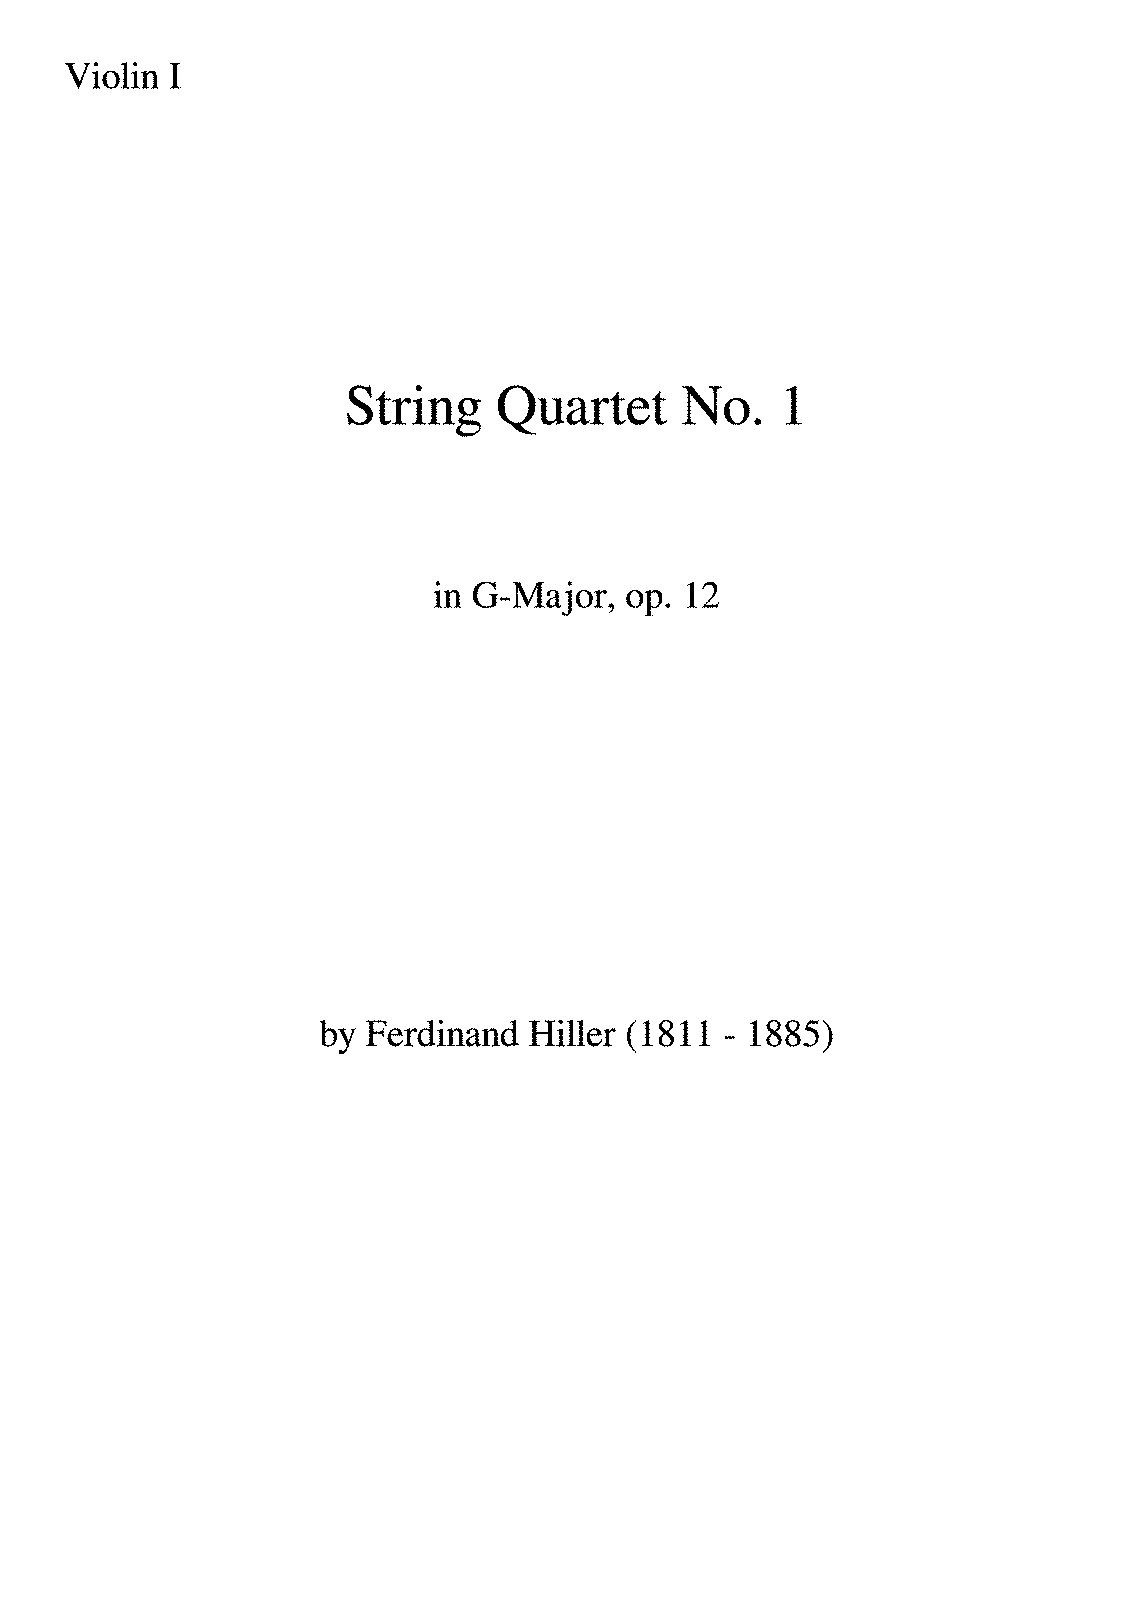 PMLP191828-Hiller Quartet op 12 parts.pdf